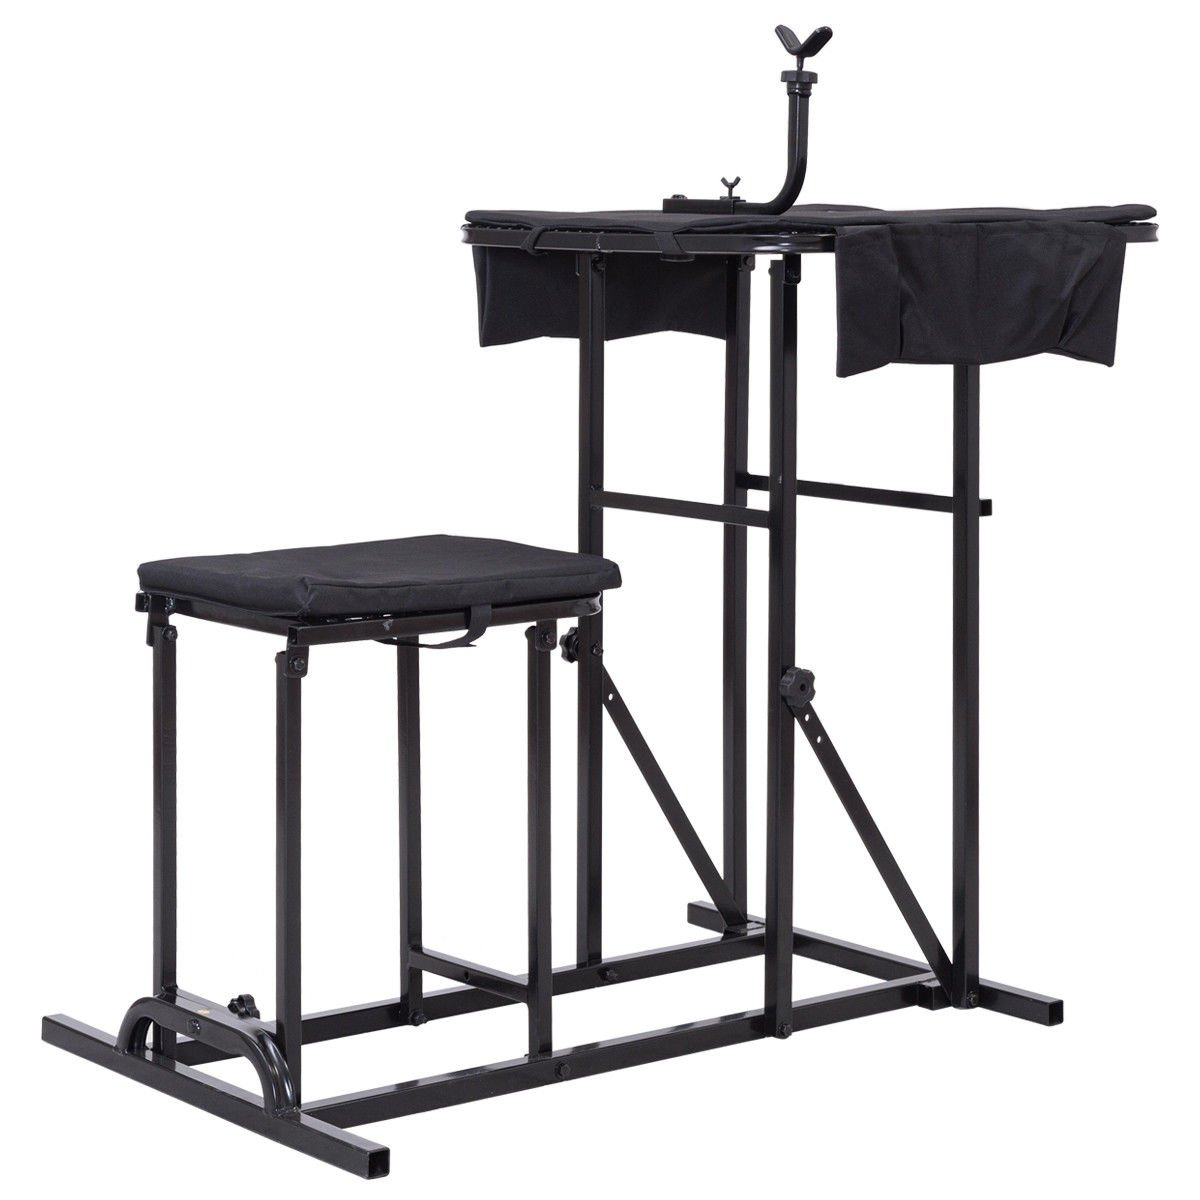 Folding Shooting Bench Seat with Adjustable Table Gun Rest Height Adjustable by BUY JOY (Image #4)